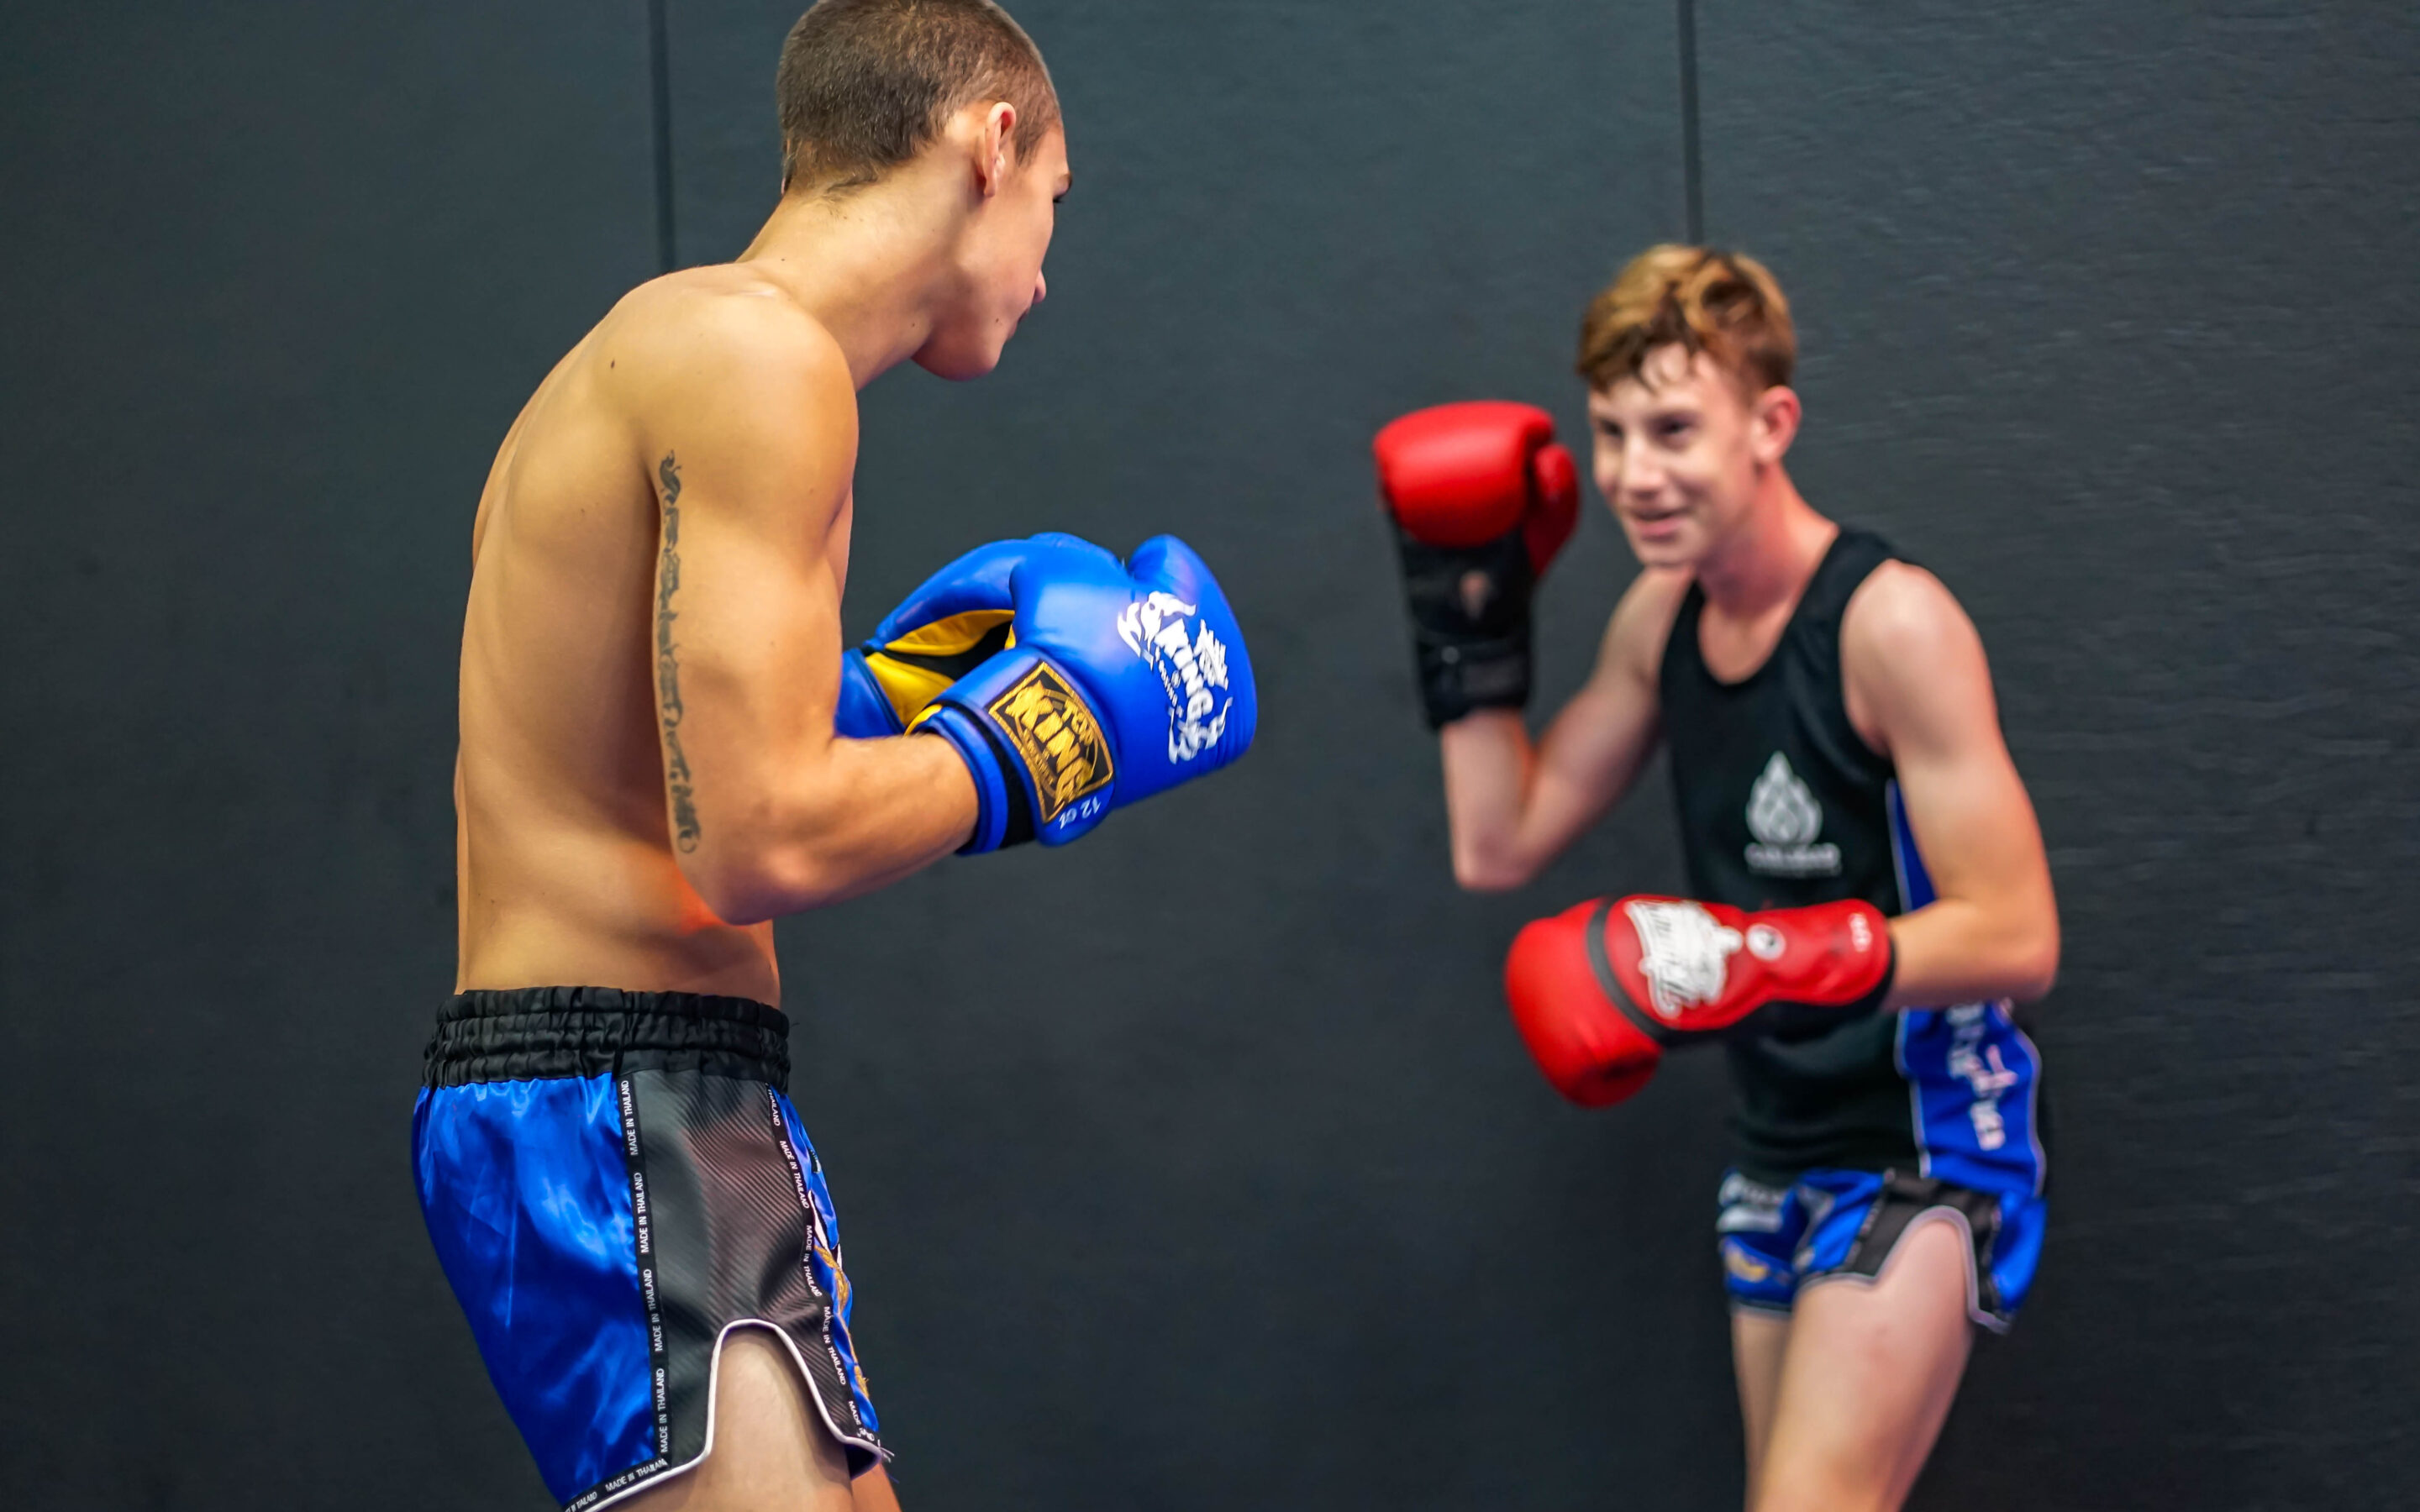 Muay Thai Education On The Rise